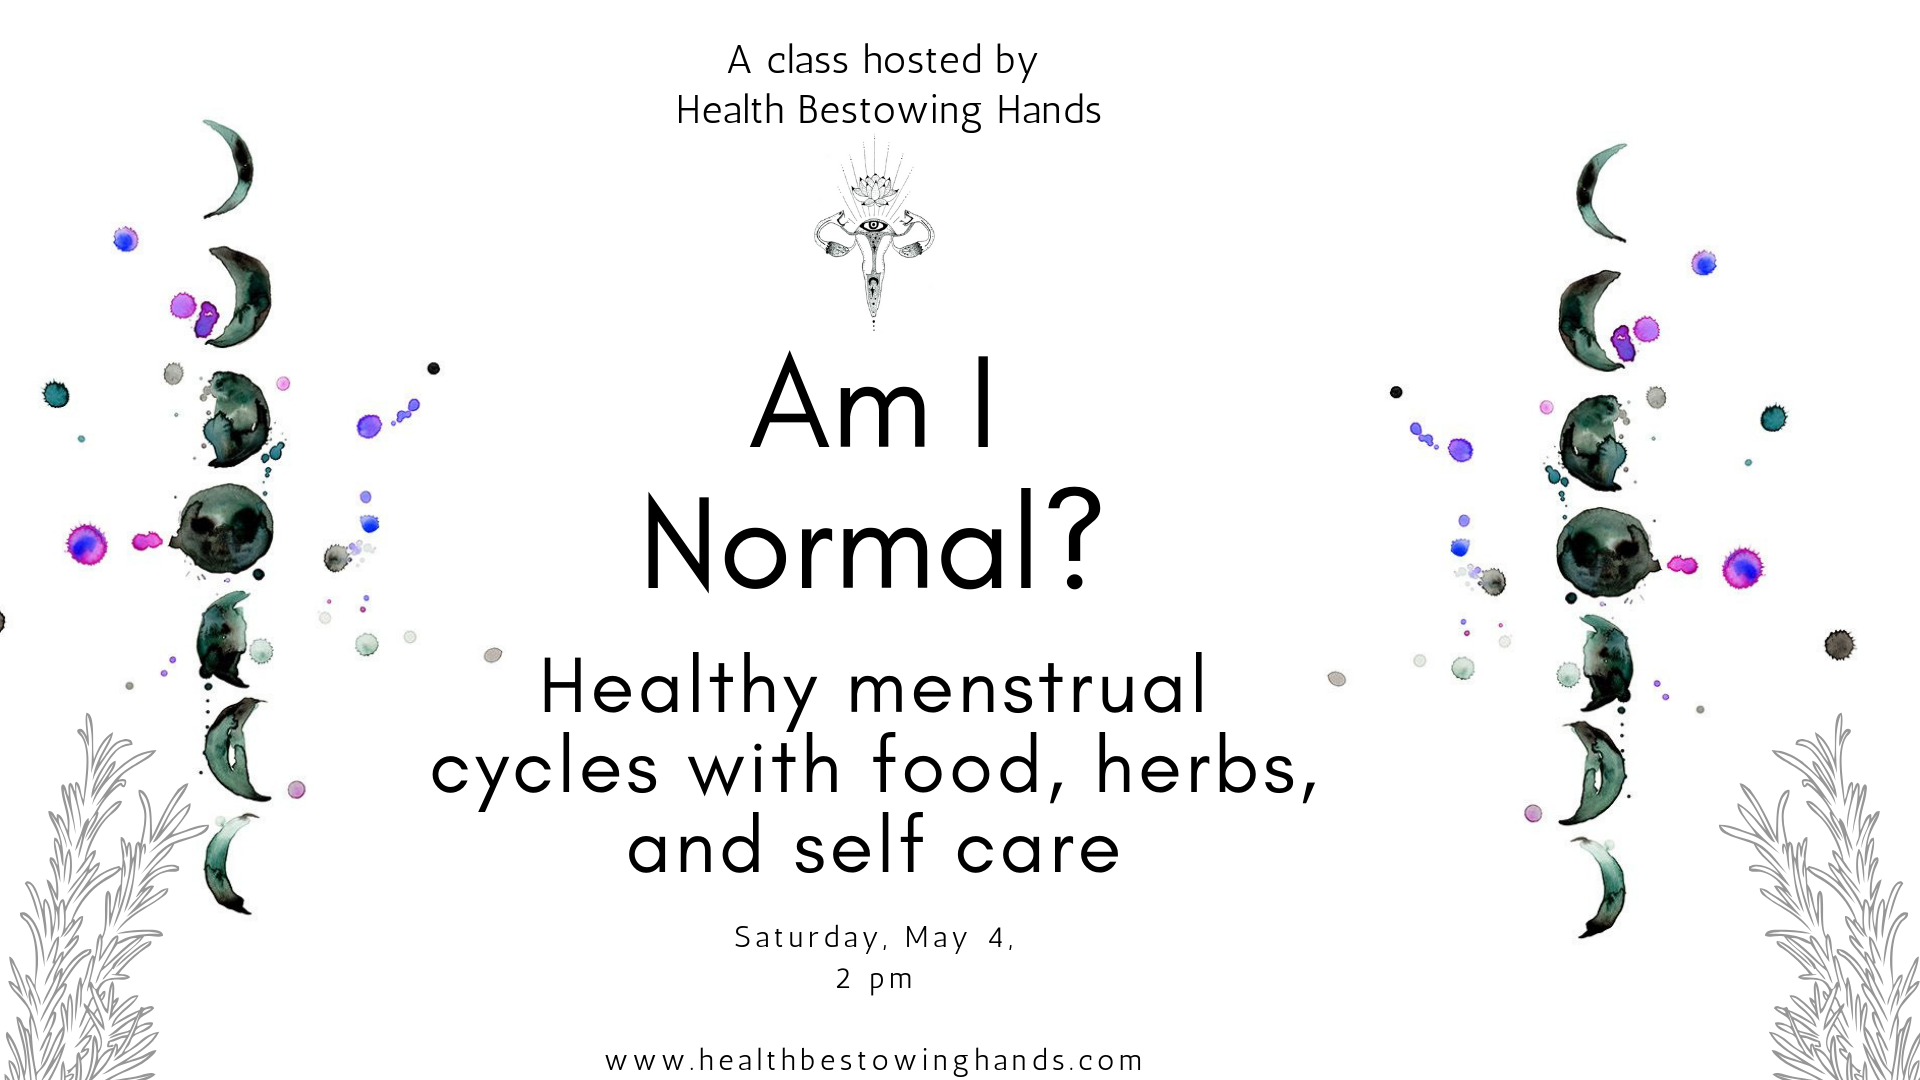 Am I Normal? Healthy menstrual cycles with food, herbs, and self care